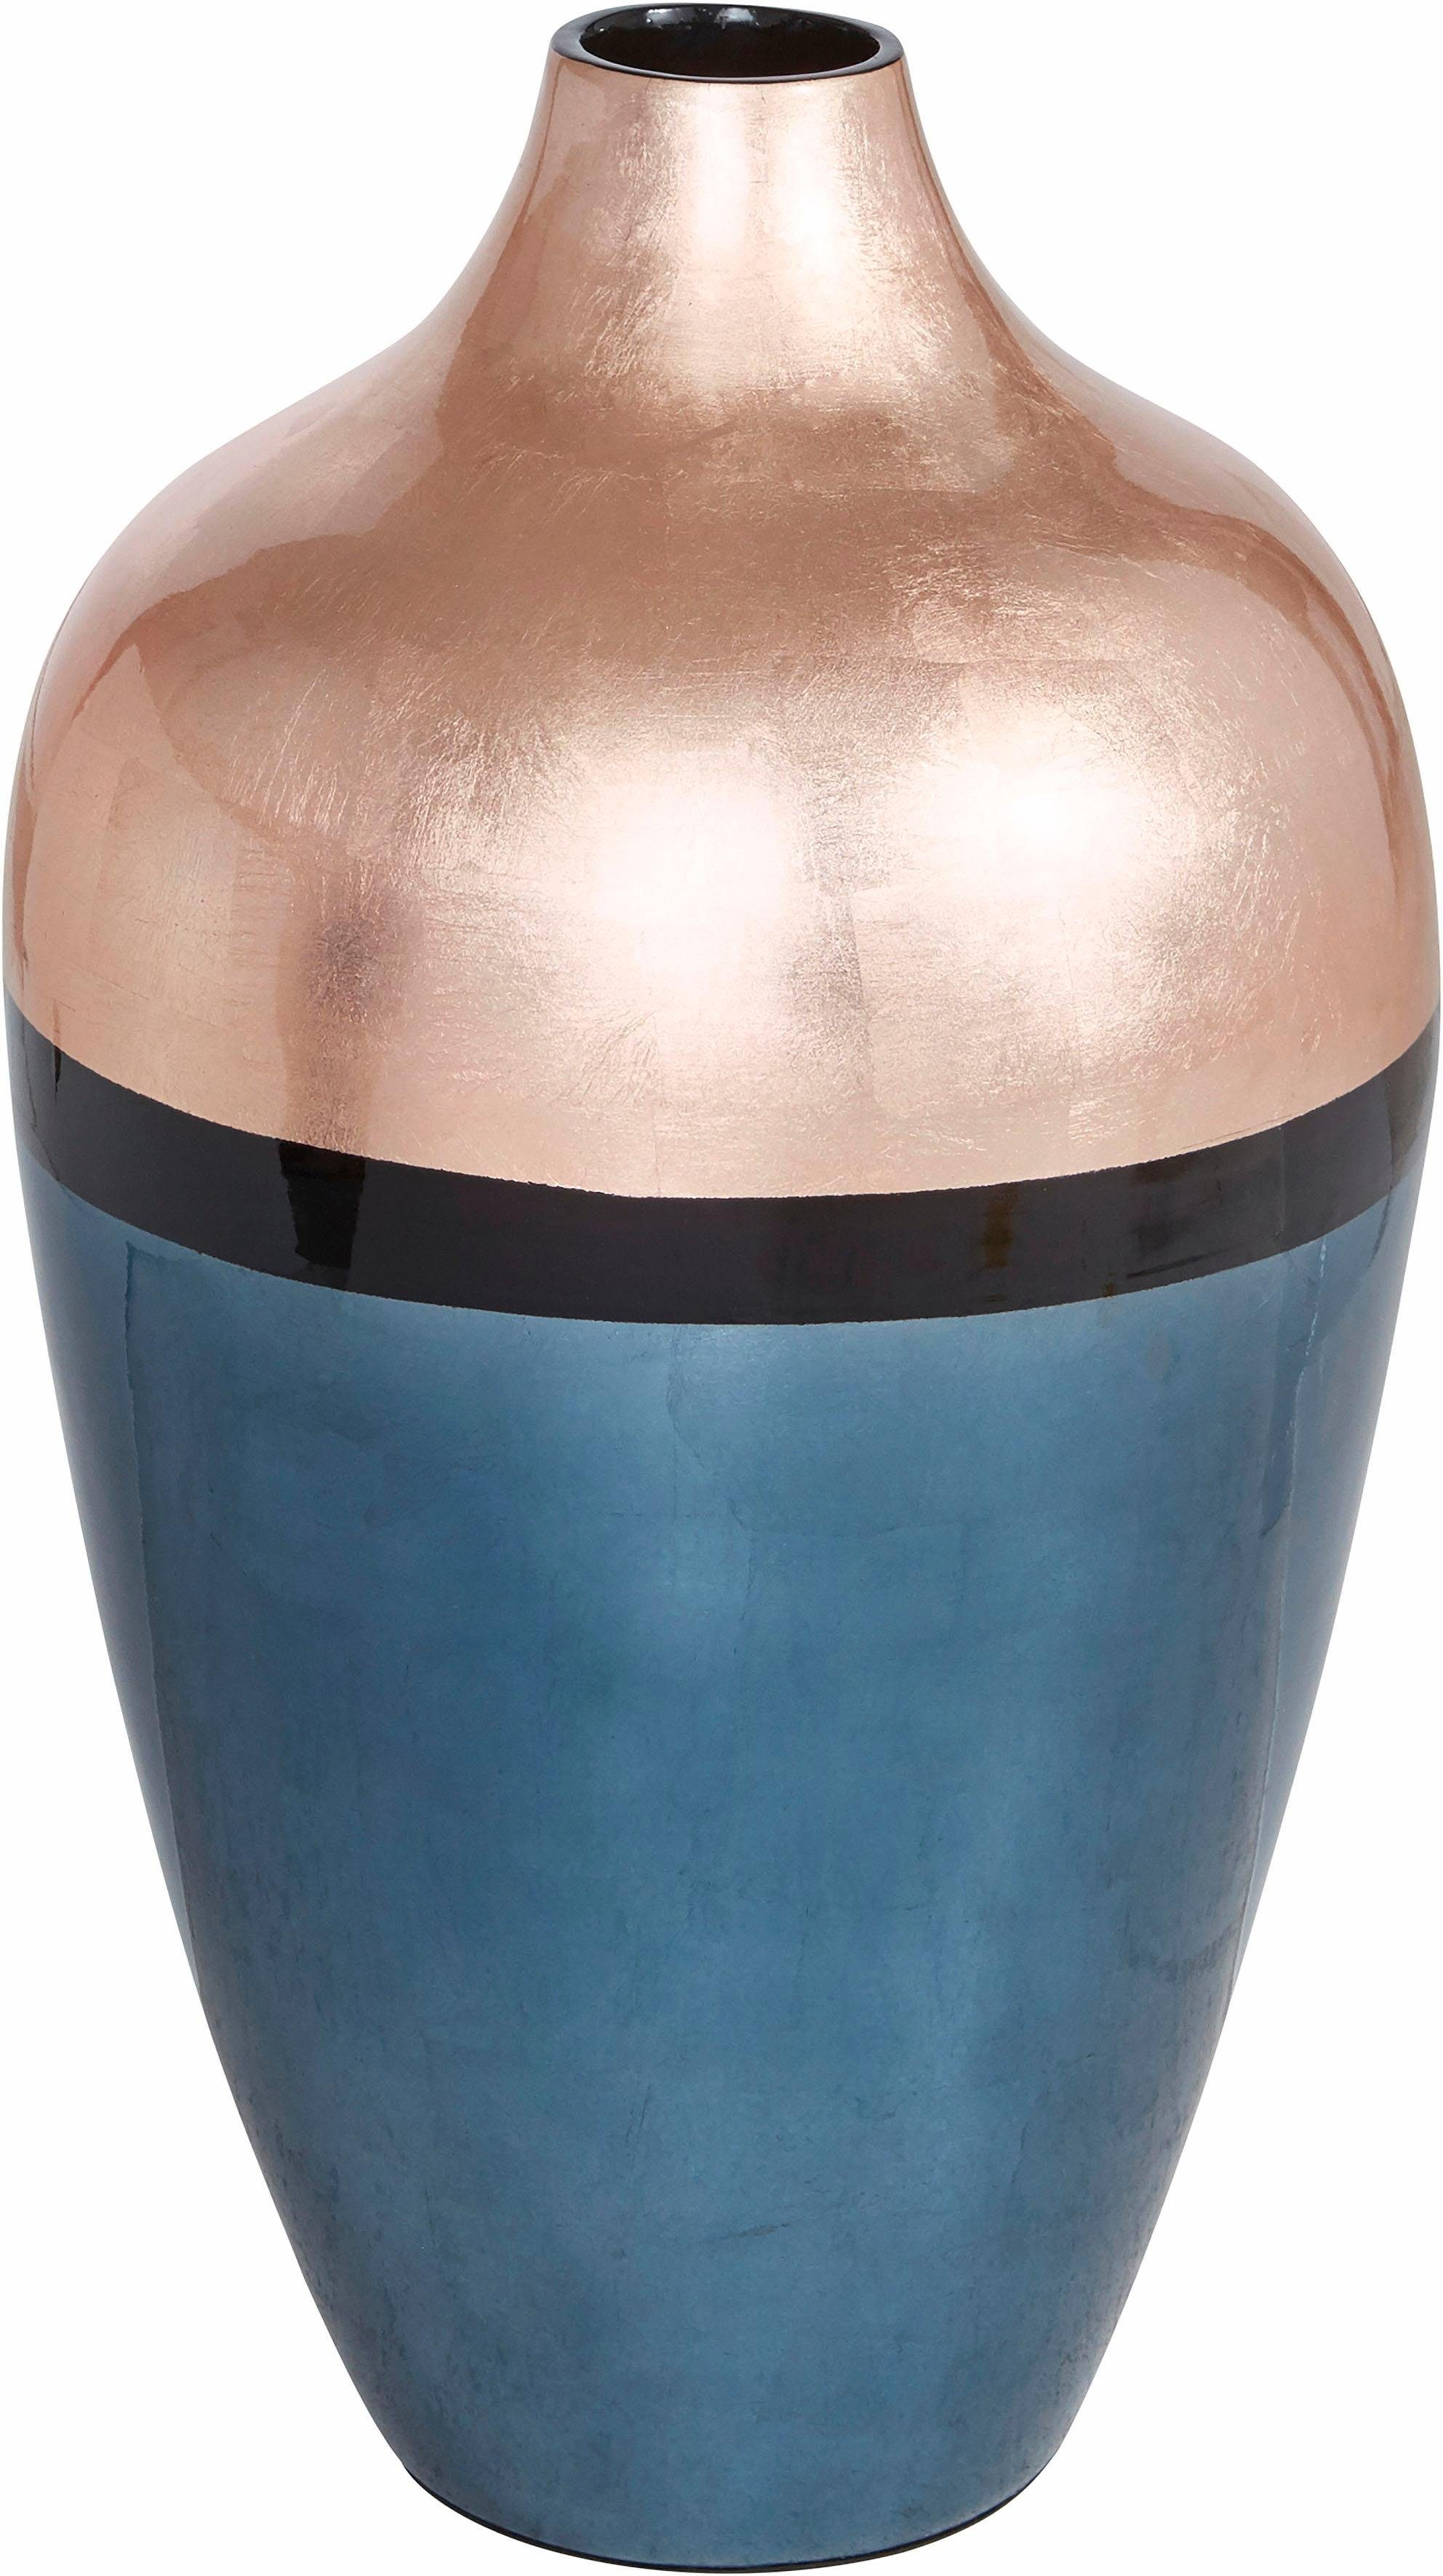 Home affaire Vase »Metallic gold«, Höhe 55 cm